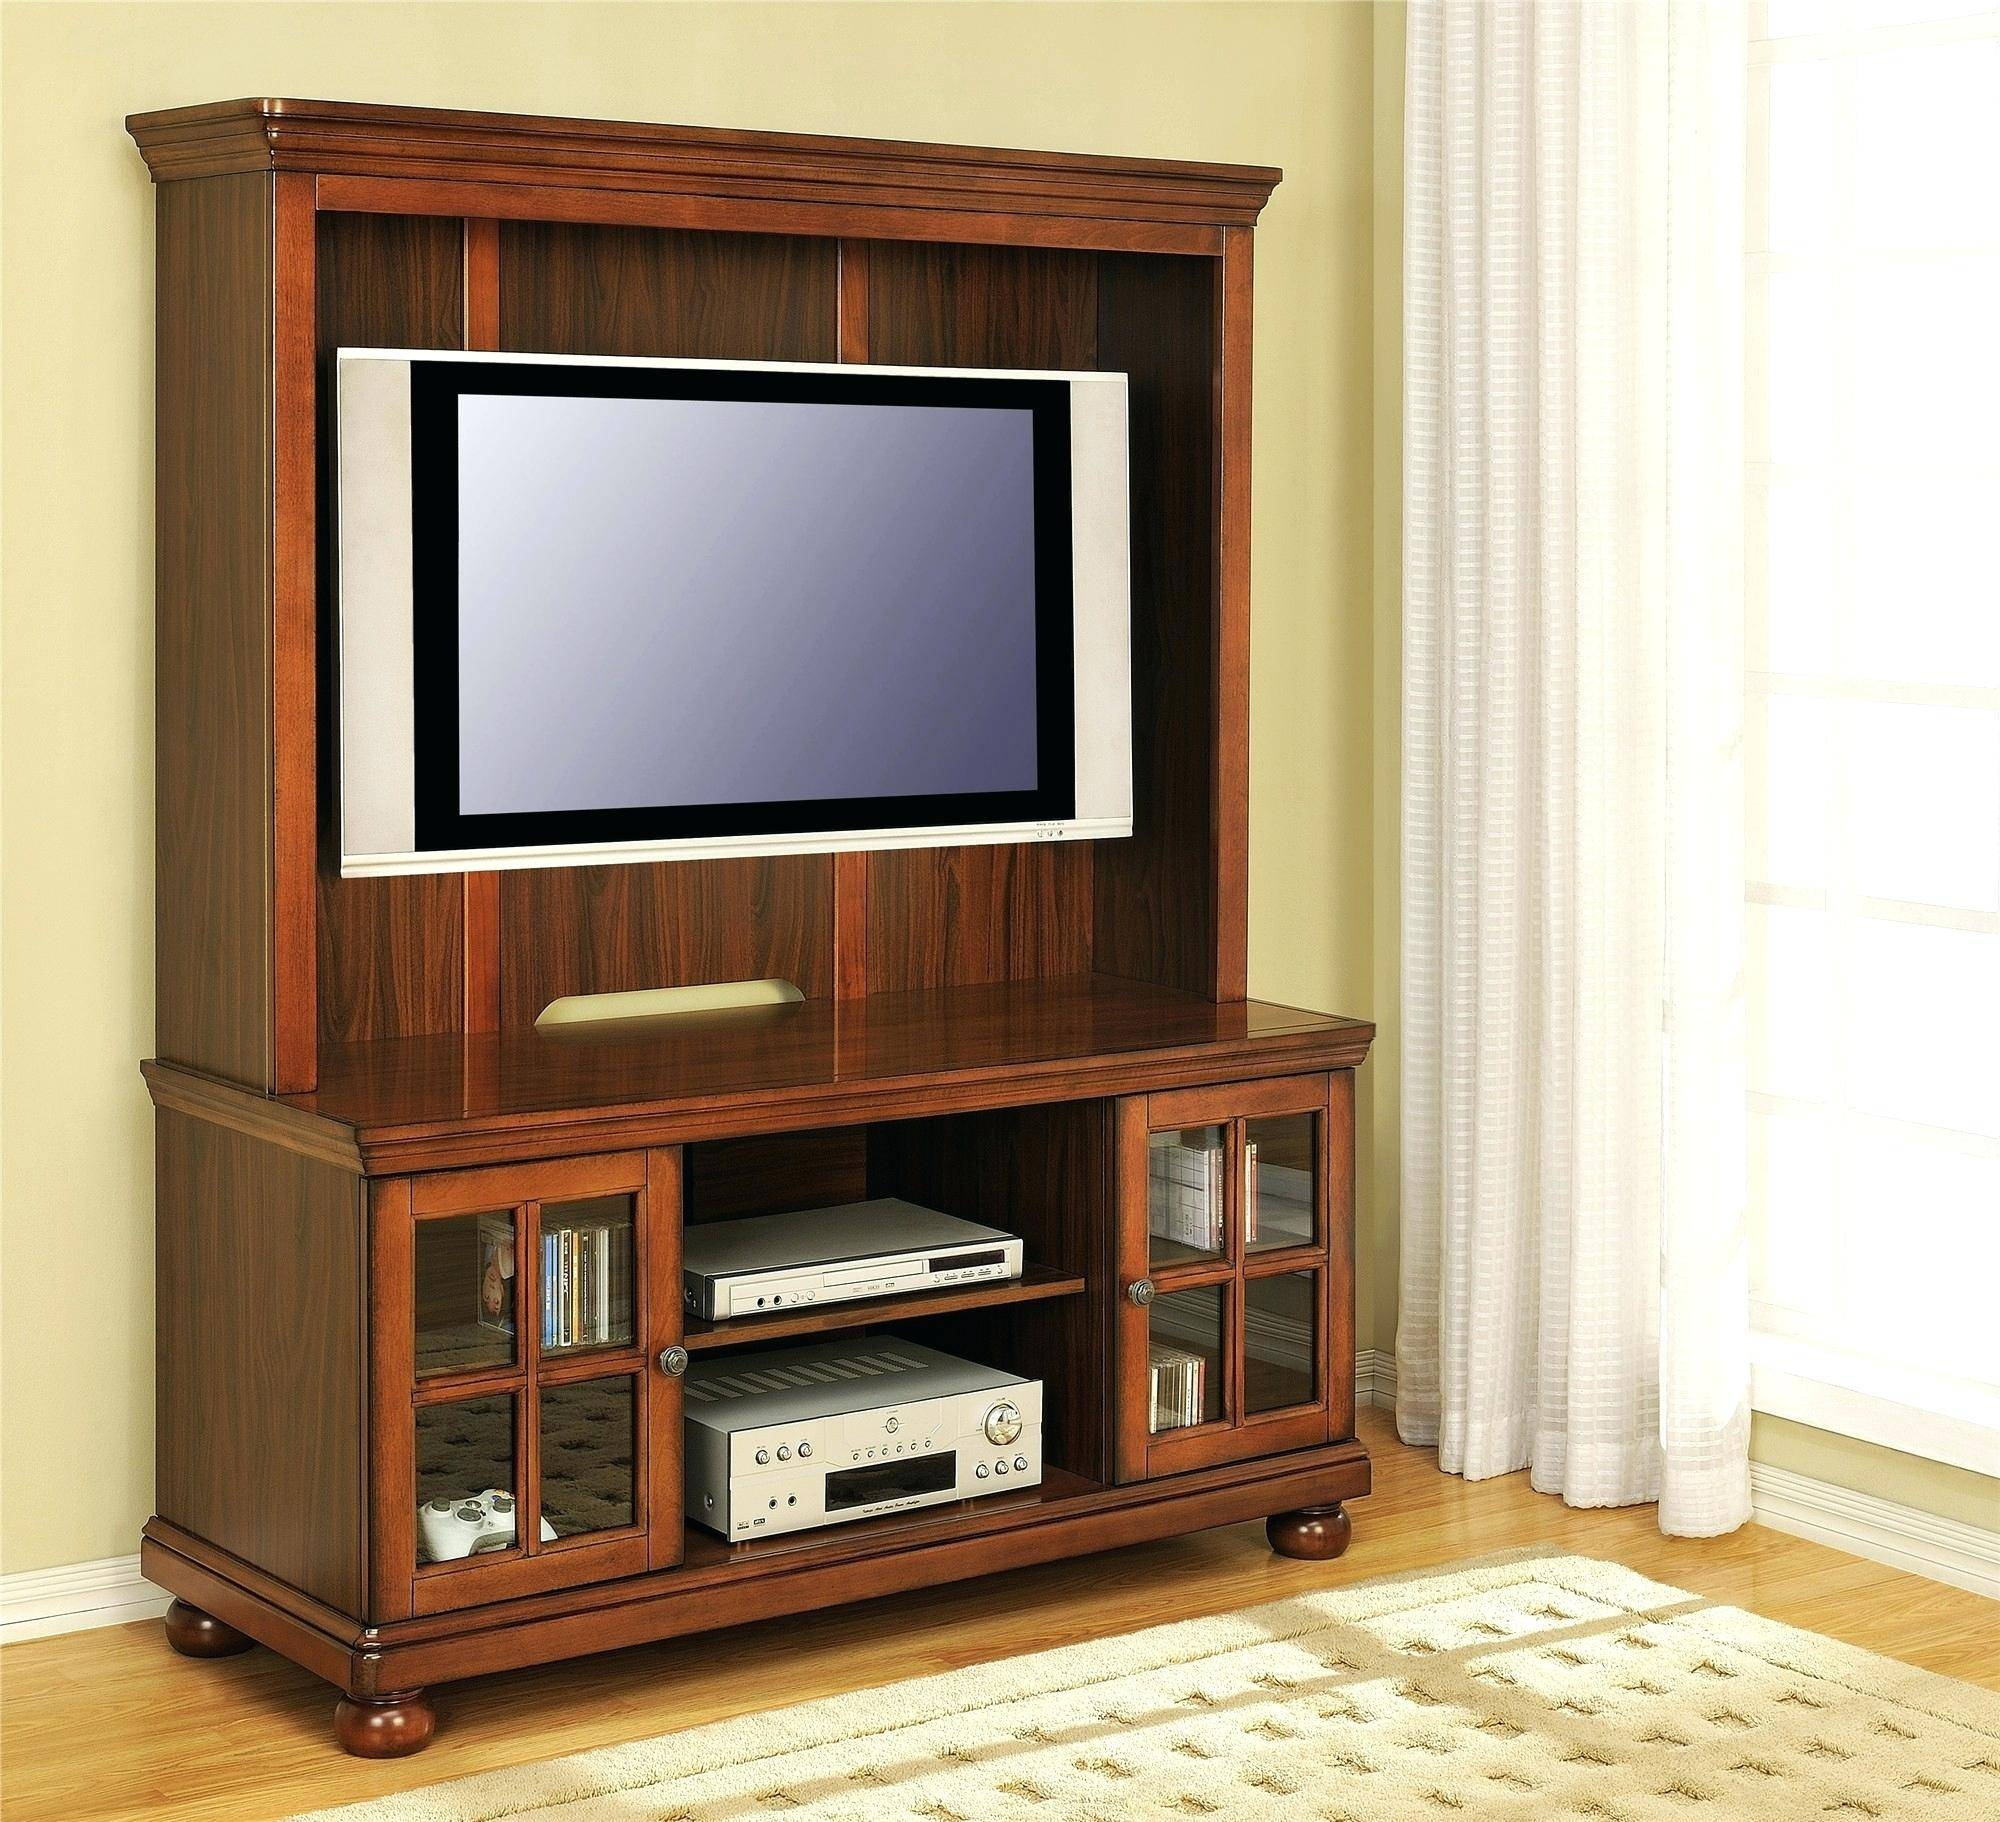 Tv Stand : Tv Stand Ideas Awesome Like This Itemrustic Dark Oak Tv within Oak Tv Cabinets for Flat Screens With Doors (Image 14 of 15)